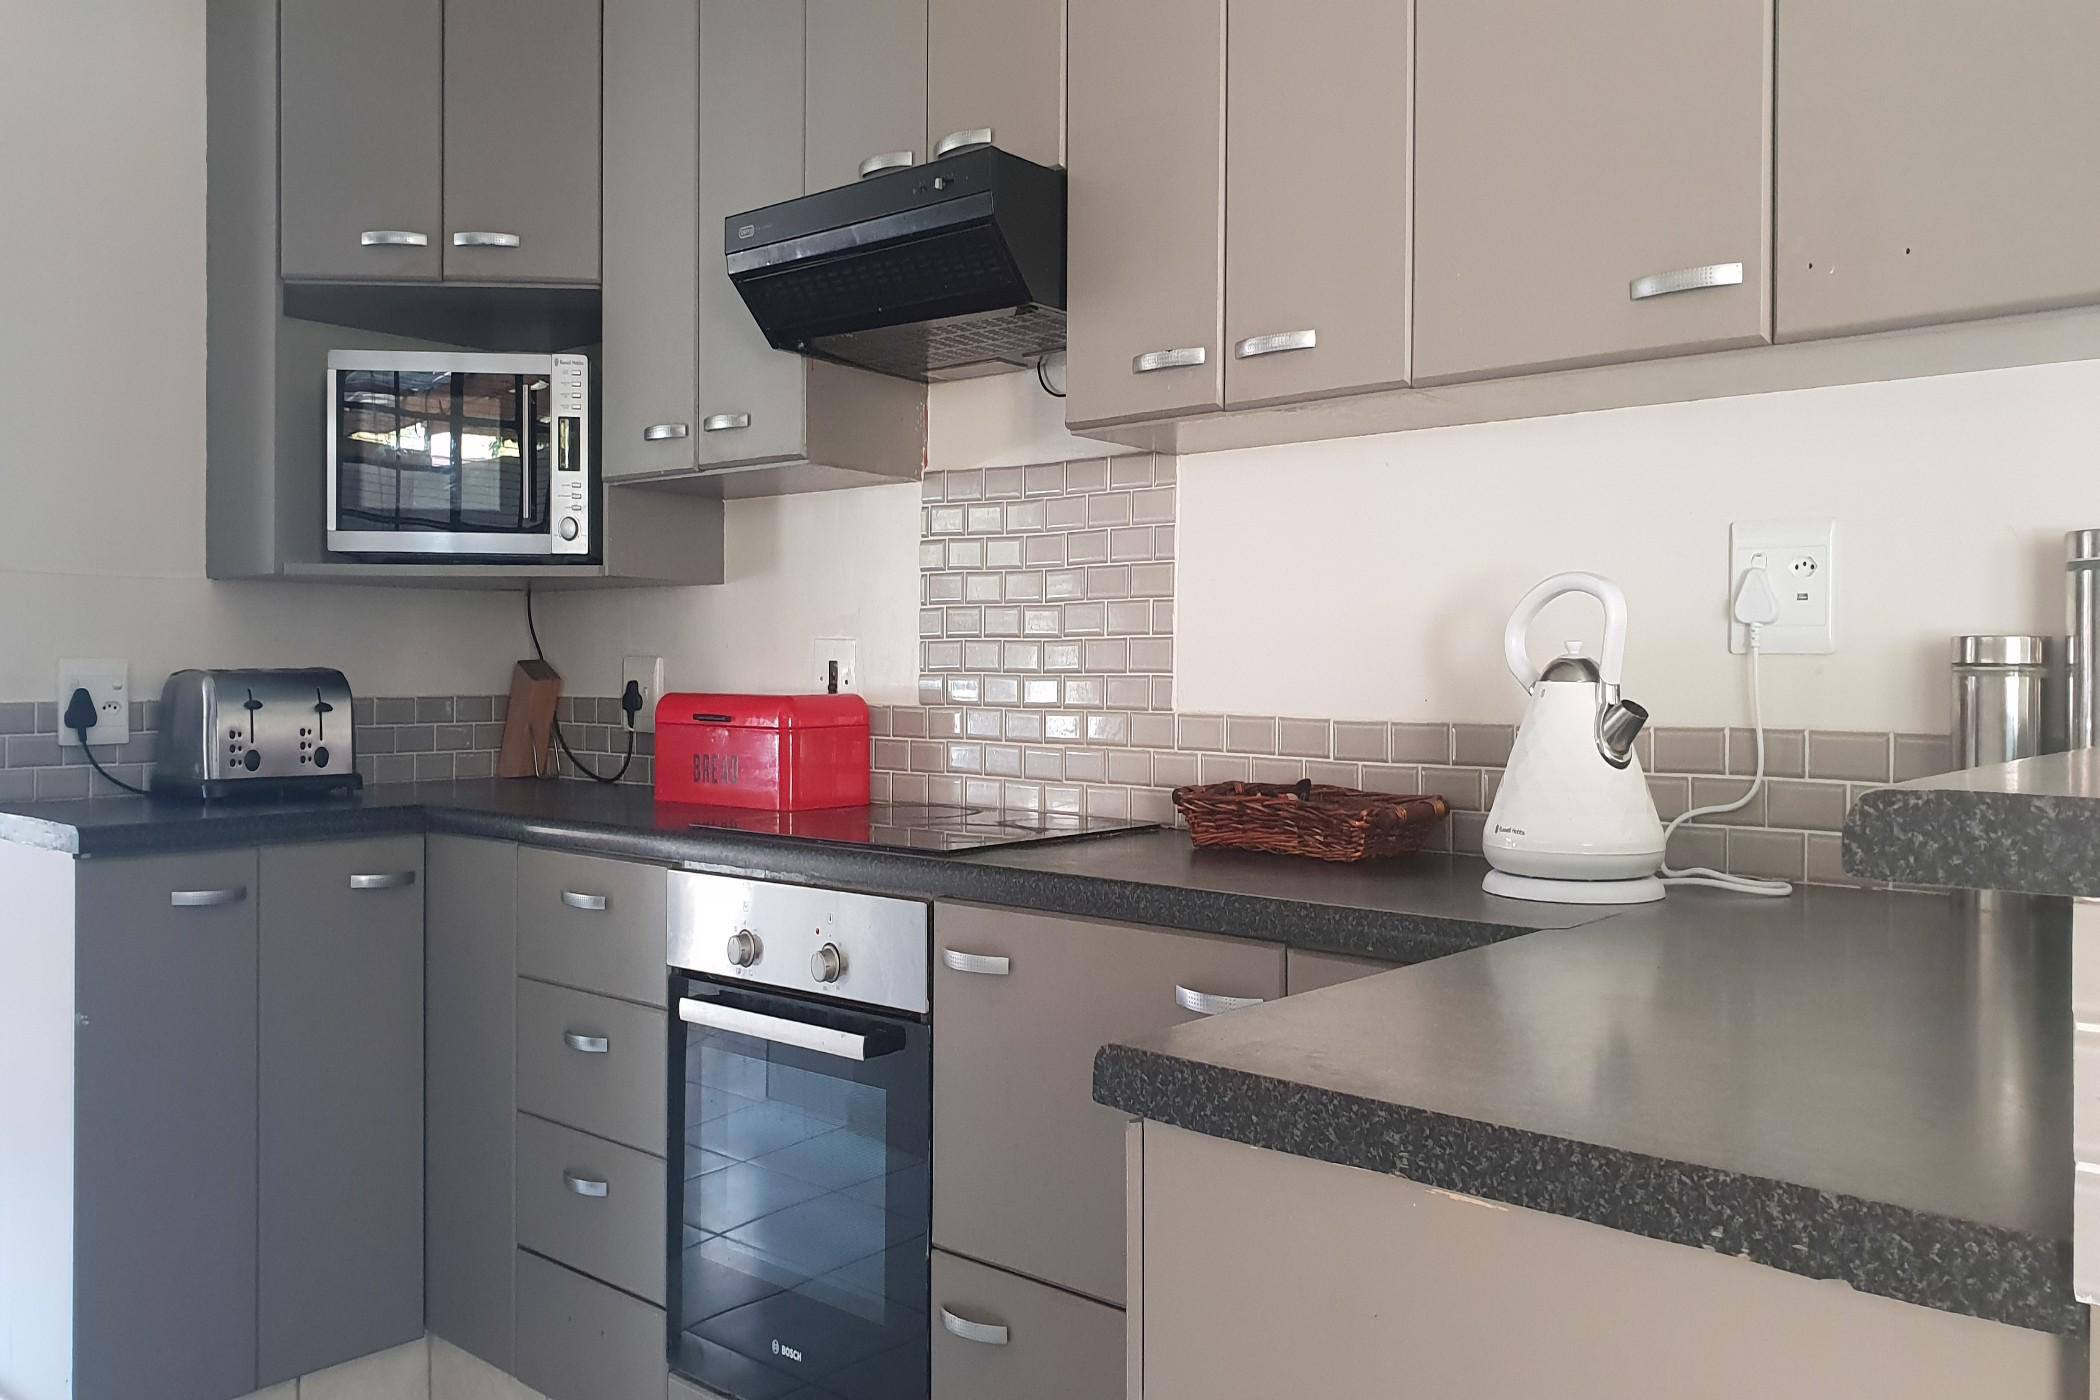 https://listing.pamgolding.co.za/images/properties/201909/1510239/H/1510239_H_16.jpg